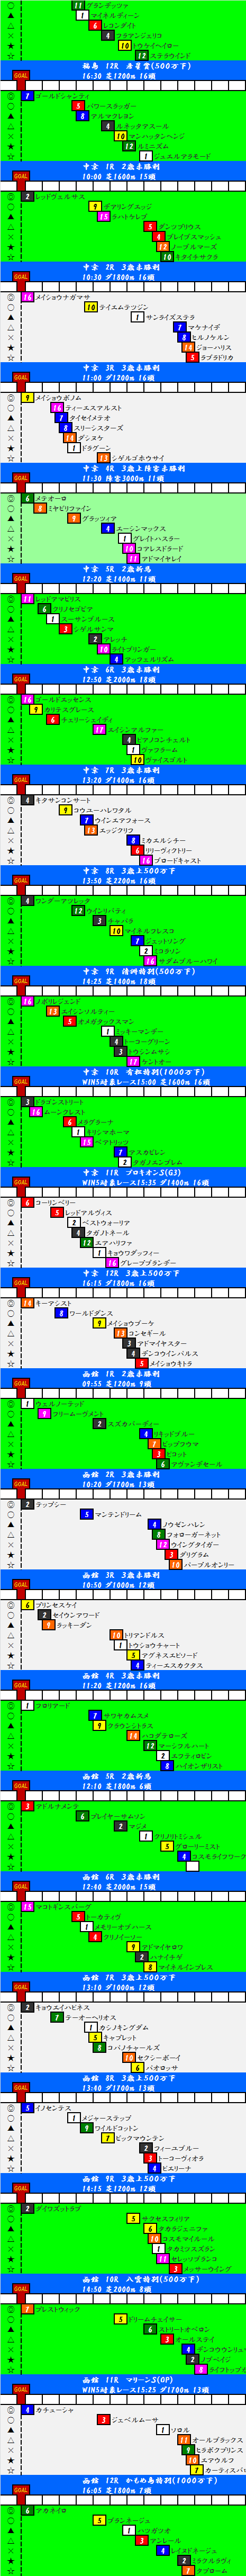 2015071202.png